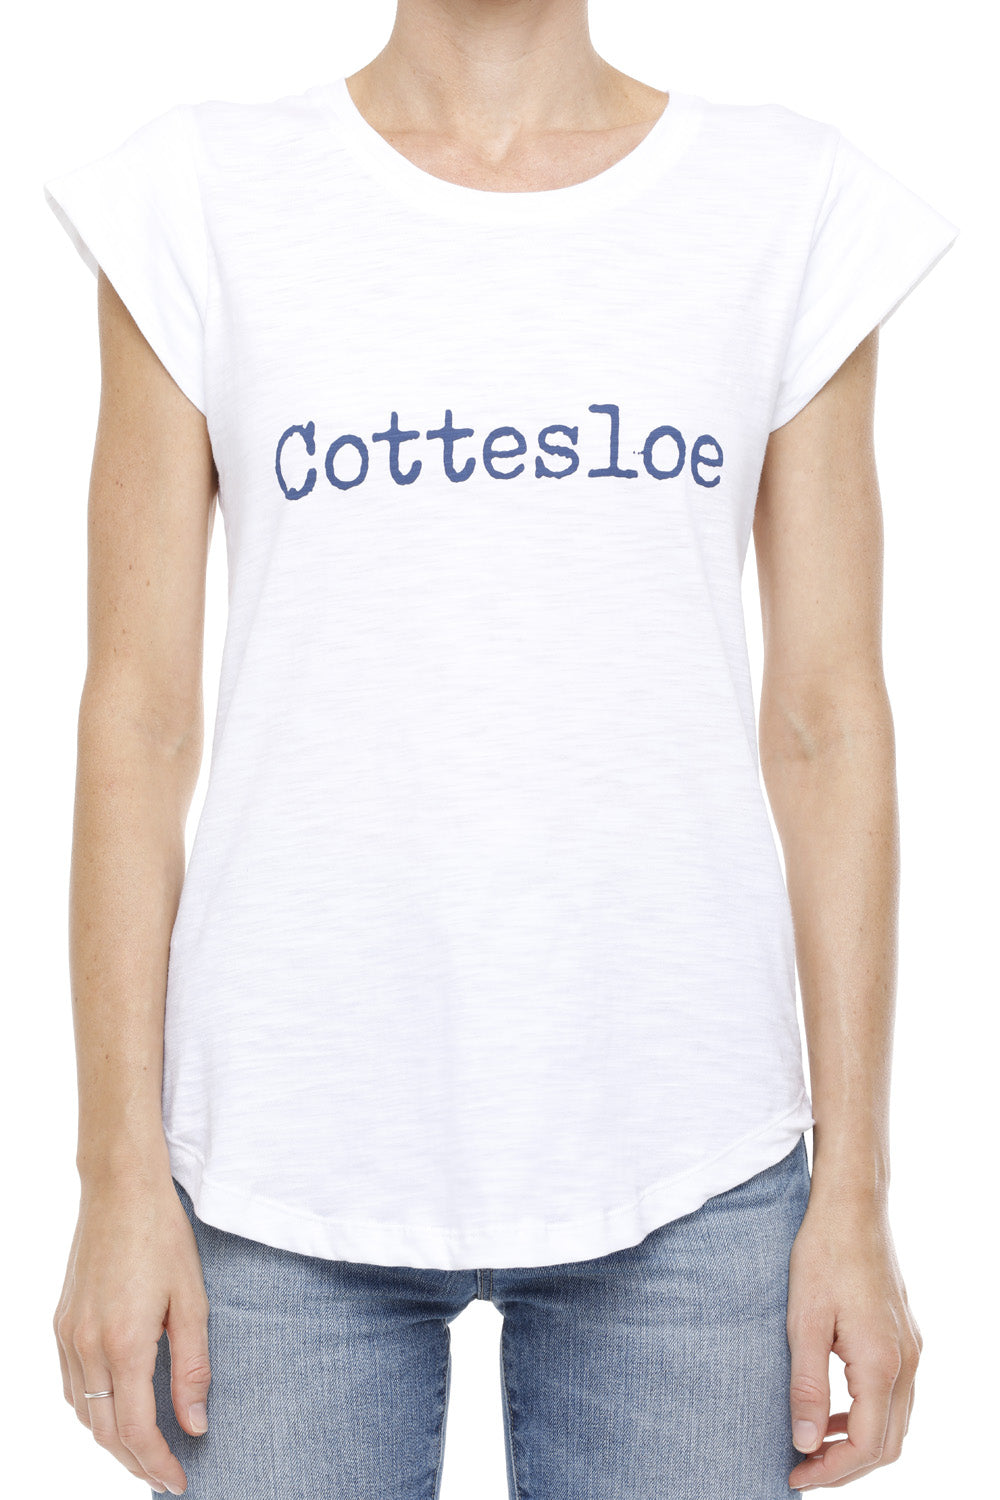 Cottesloe T-shirt